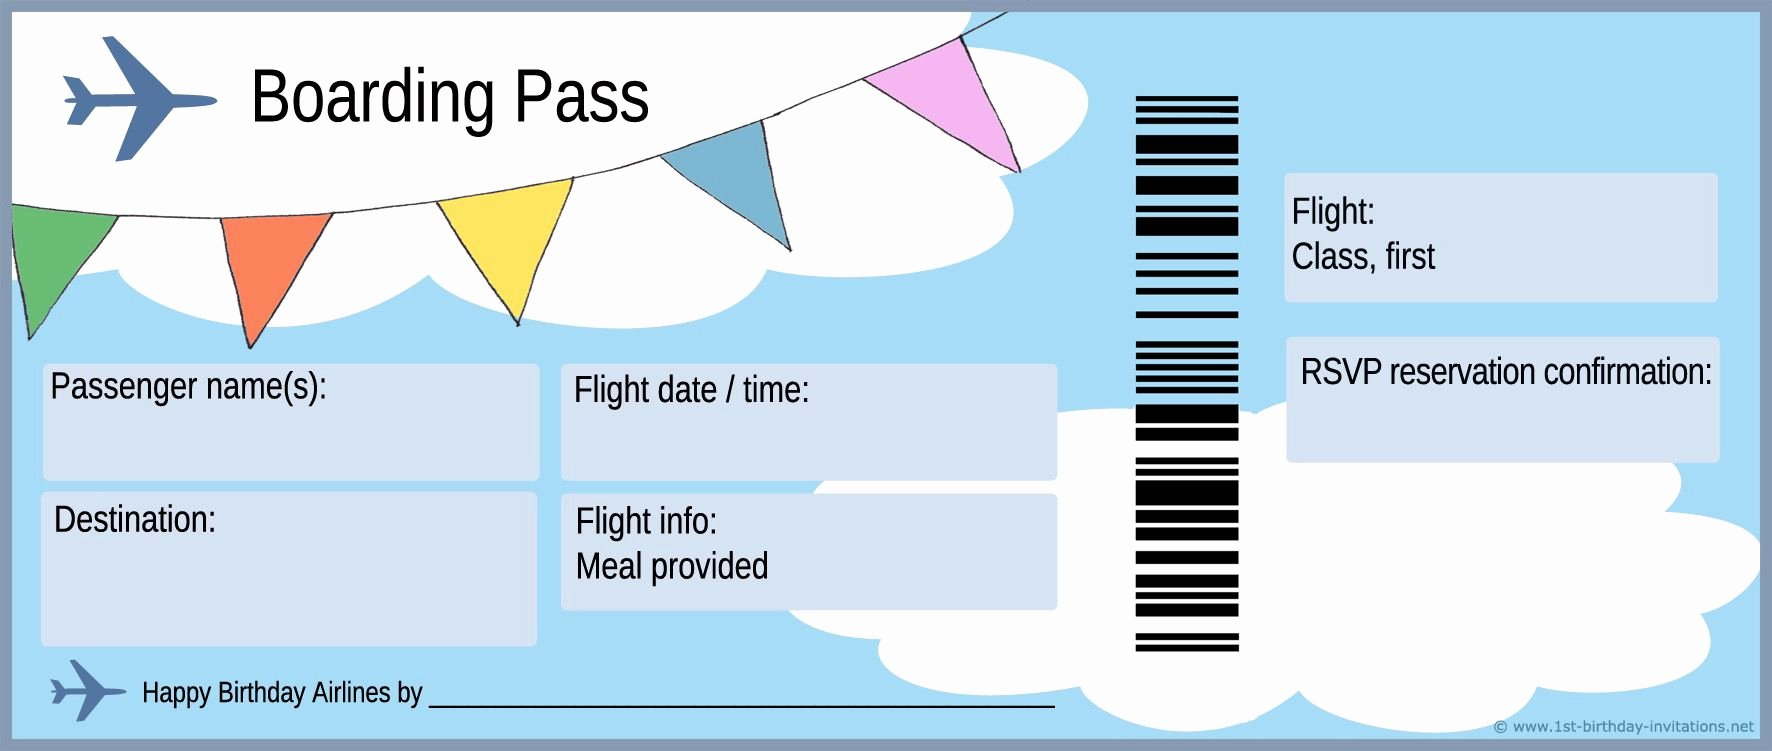 Boarding Pass Invitation Template Free Luxury Free Boarding Pass Template Google Search